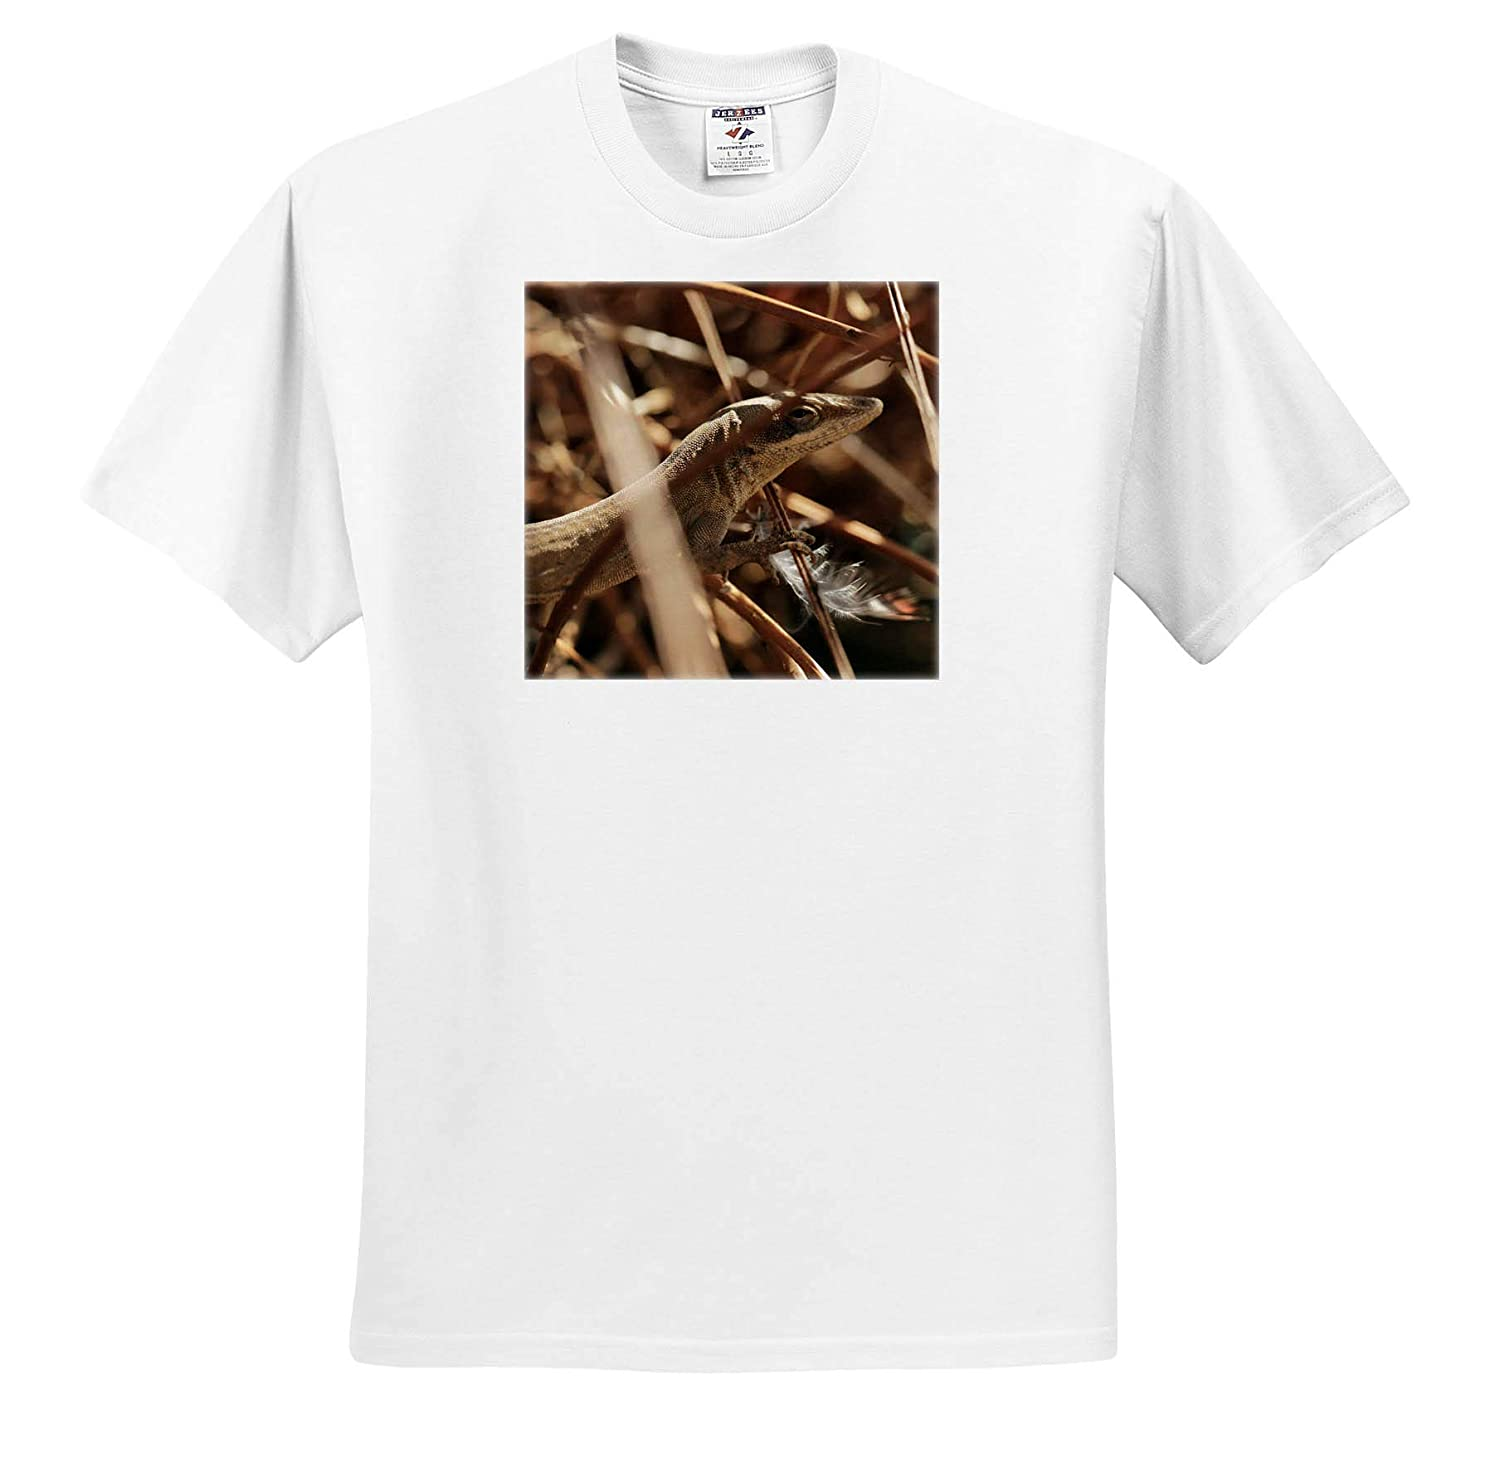 3dRose Stamp City - T-Shirts Animals Close up Photo of a Green Anole camouflaging in Dried Ferns